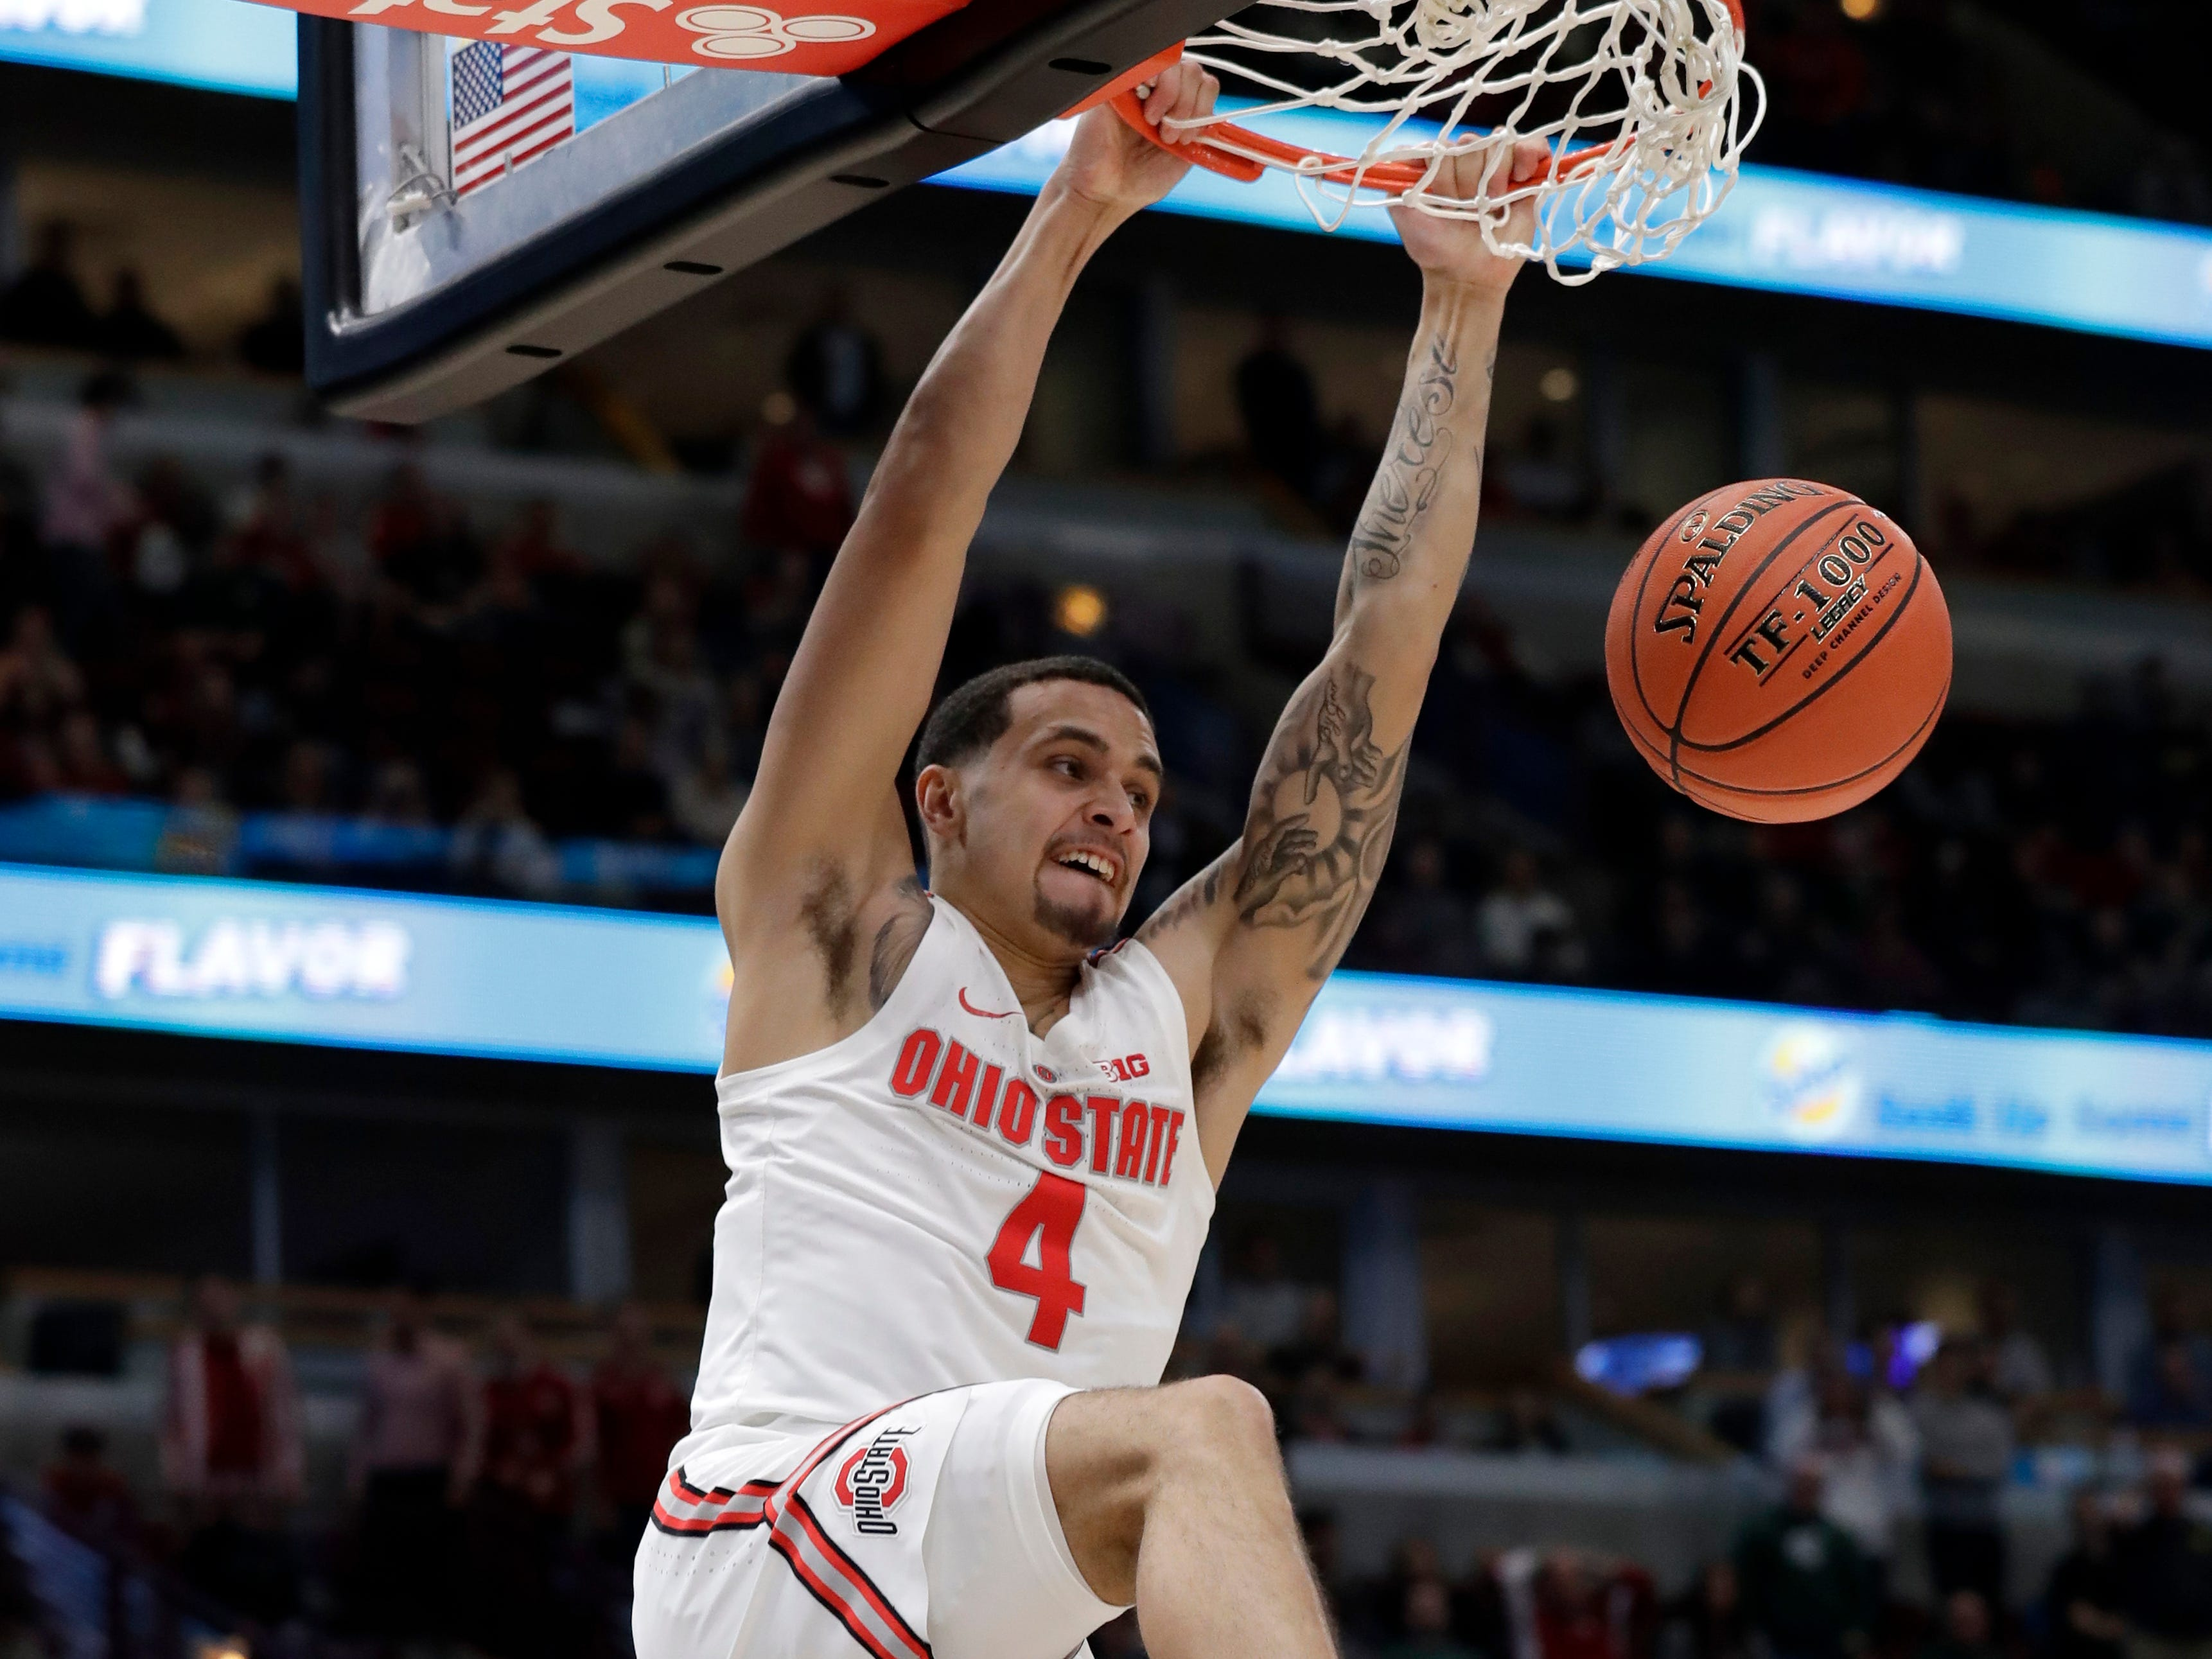 Duane Washington Jr., 6-3 guard, freshman, Ohio State (Grand Rapids Christian): Washington played three years at Grand Rapids Christian before finishing his prep career in California. In his first season in Columbus, Washington has played 33 games (two starts), averaging 7.2 points and 2.5 rebounds in 17.6 minutes per game.